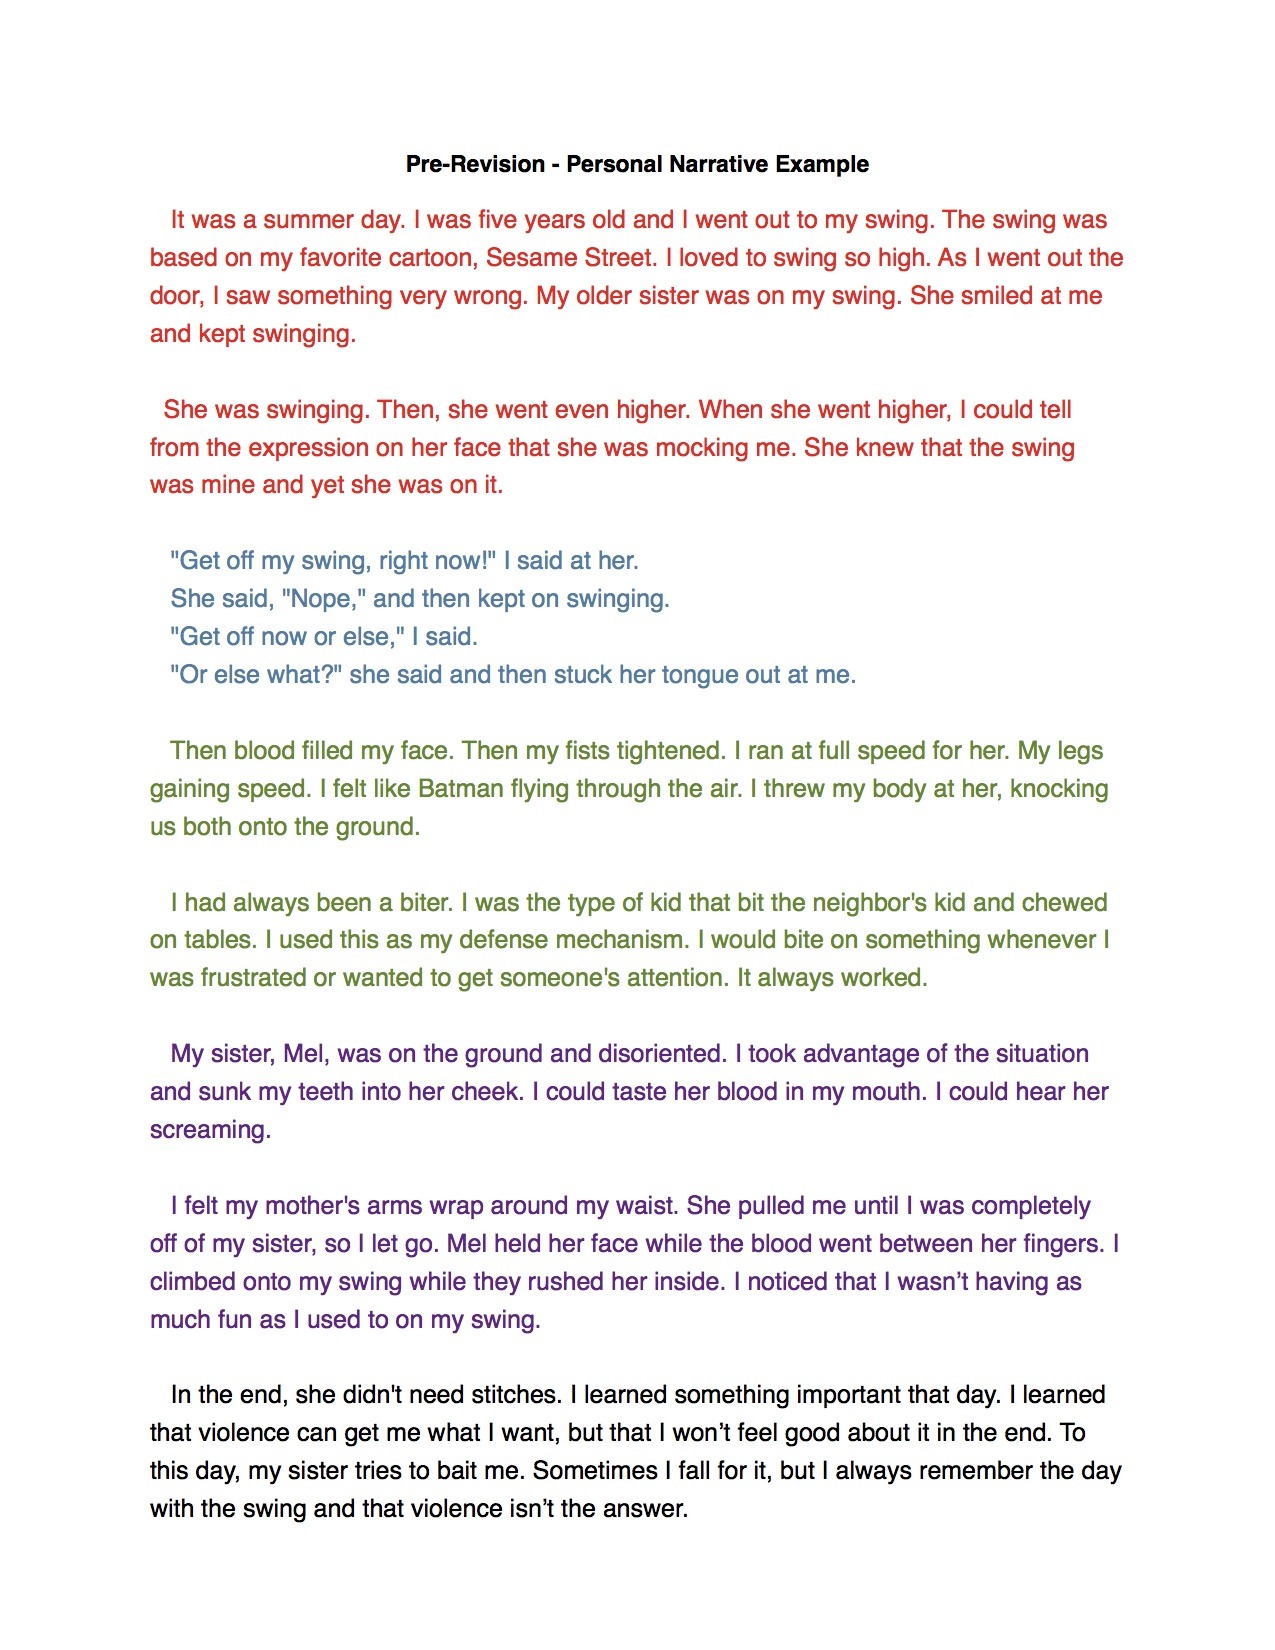 narrative essay happy story Narrative essay : my most memorable  ten more minutes, you will turn into eighteen happy birthday  i will never forget the story behind the scar,.